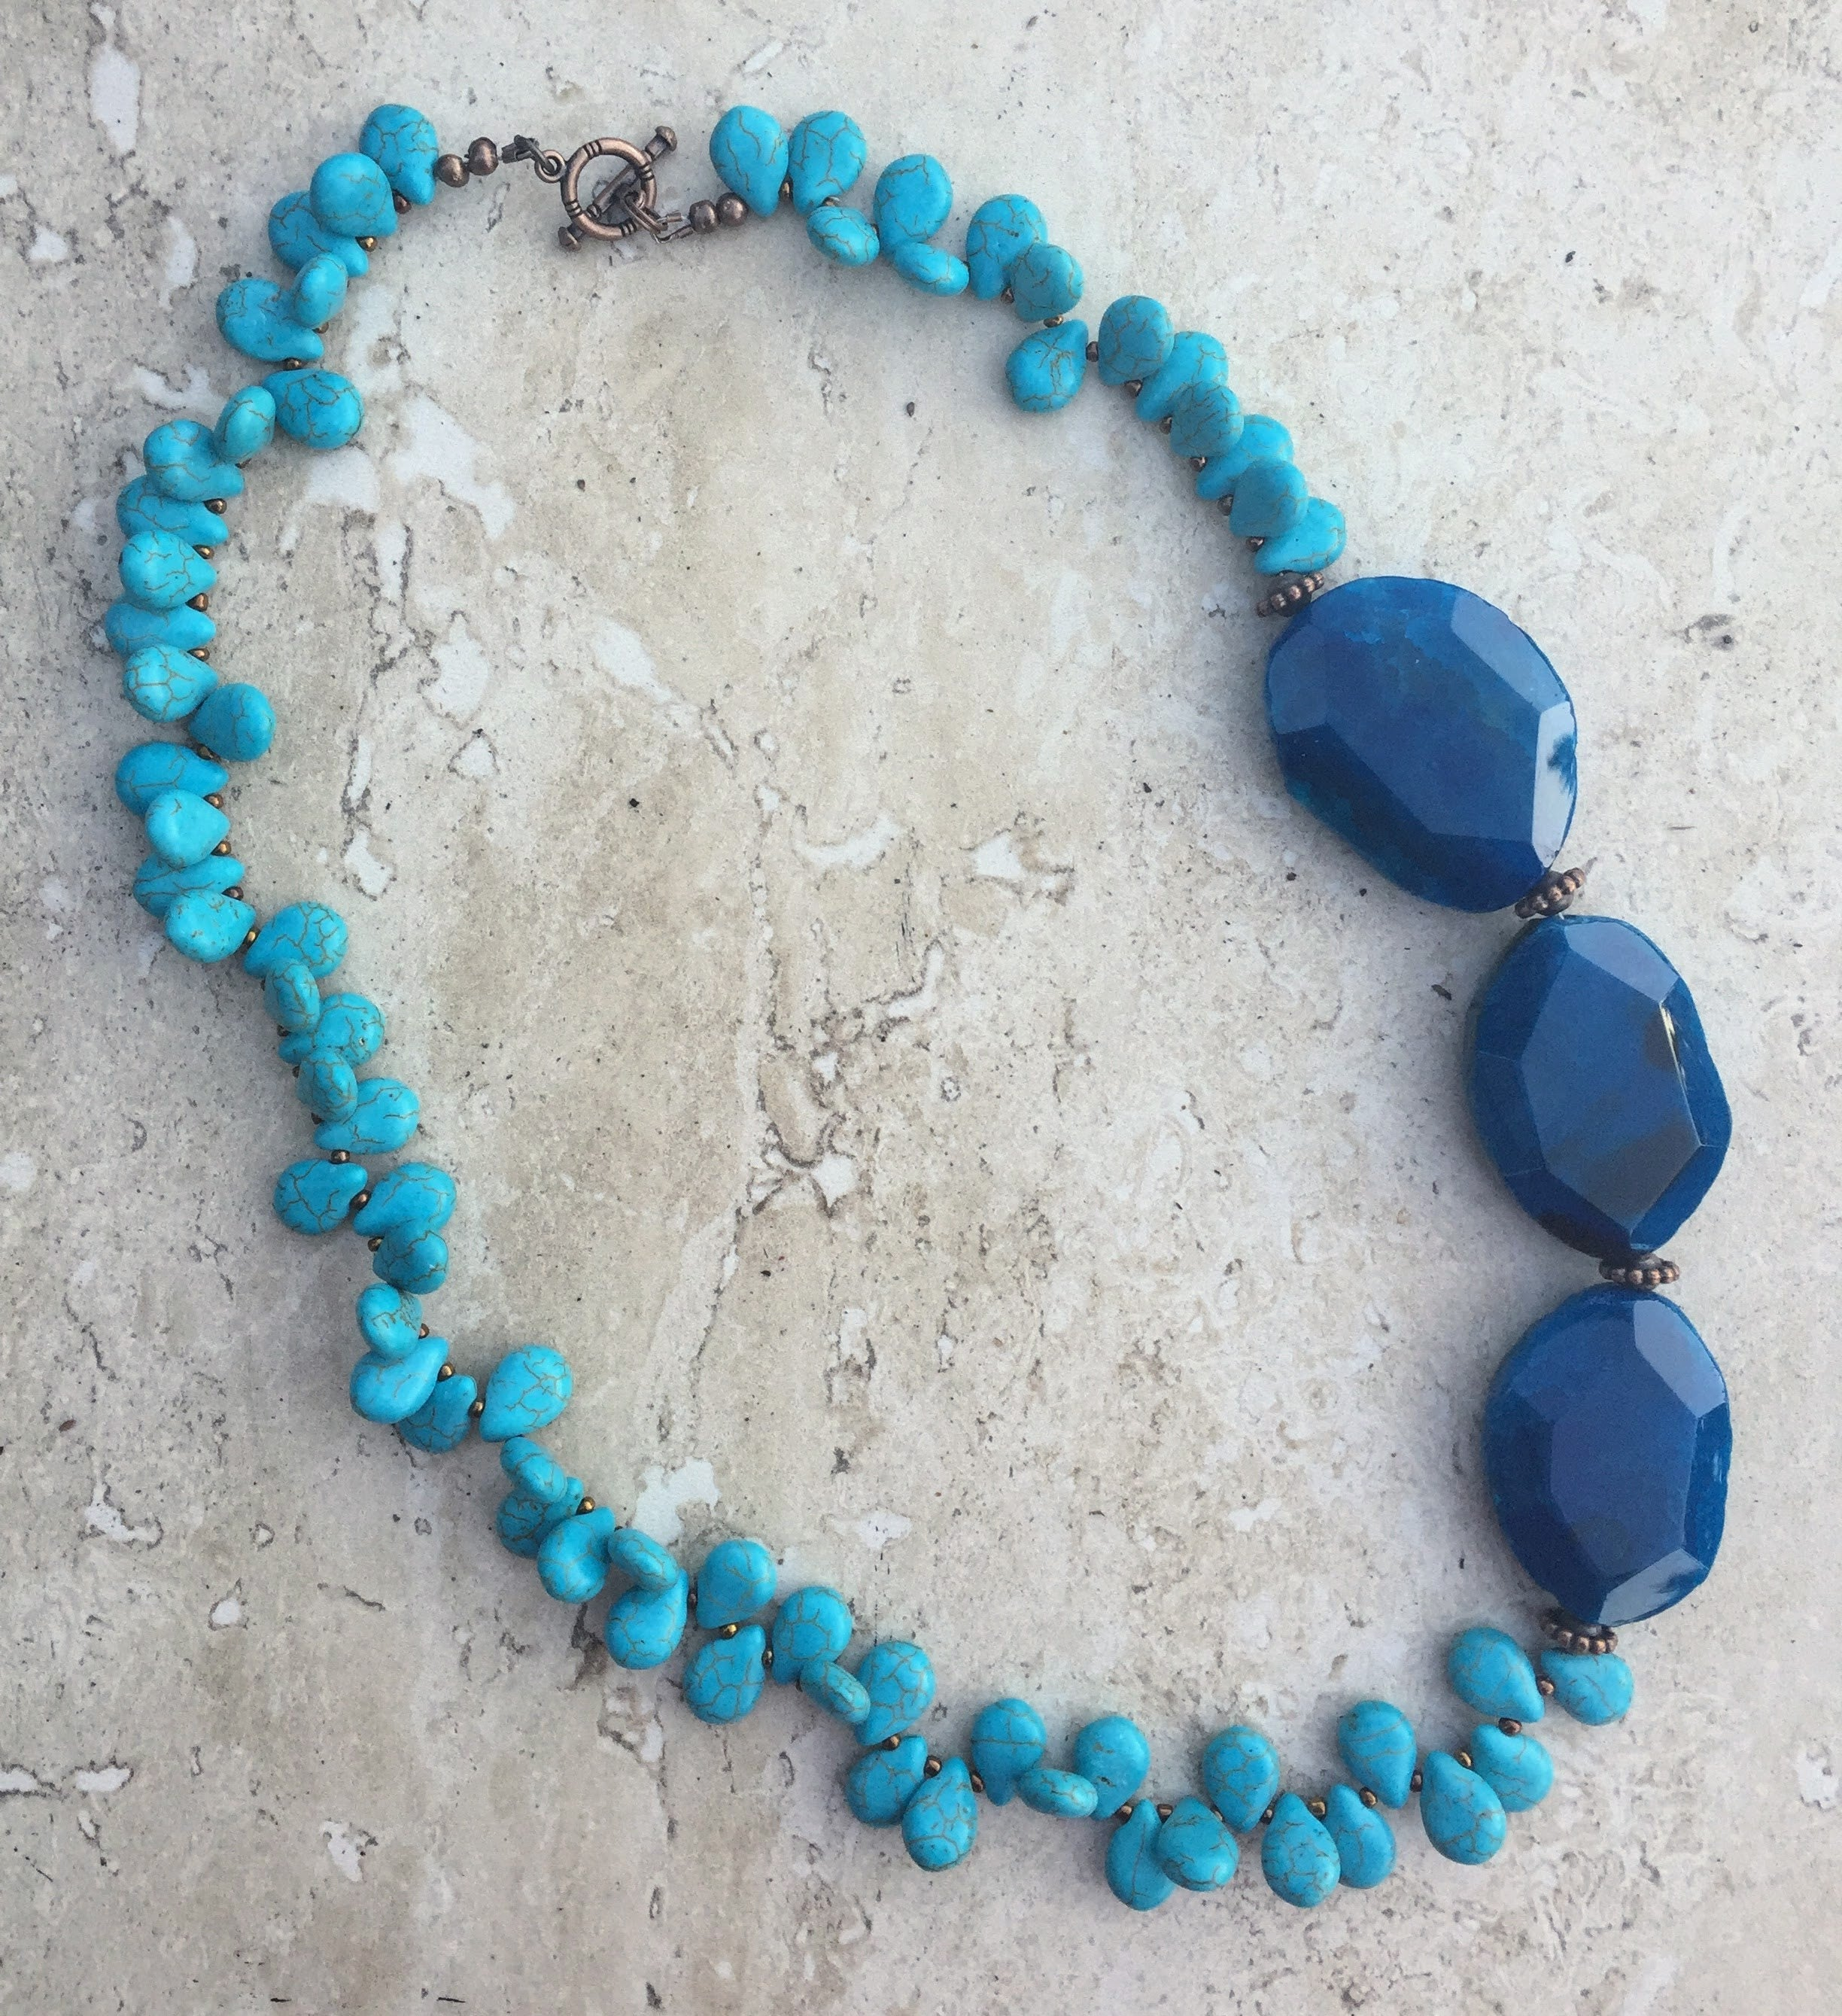 Blue Howlite Copper Bronze Tone Necklace Earring SET HANDCRAFTED Artisan Made #NBHB001